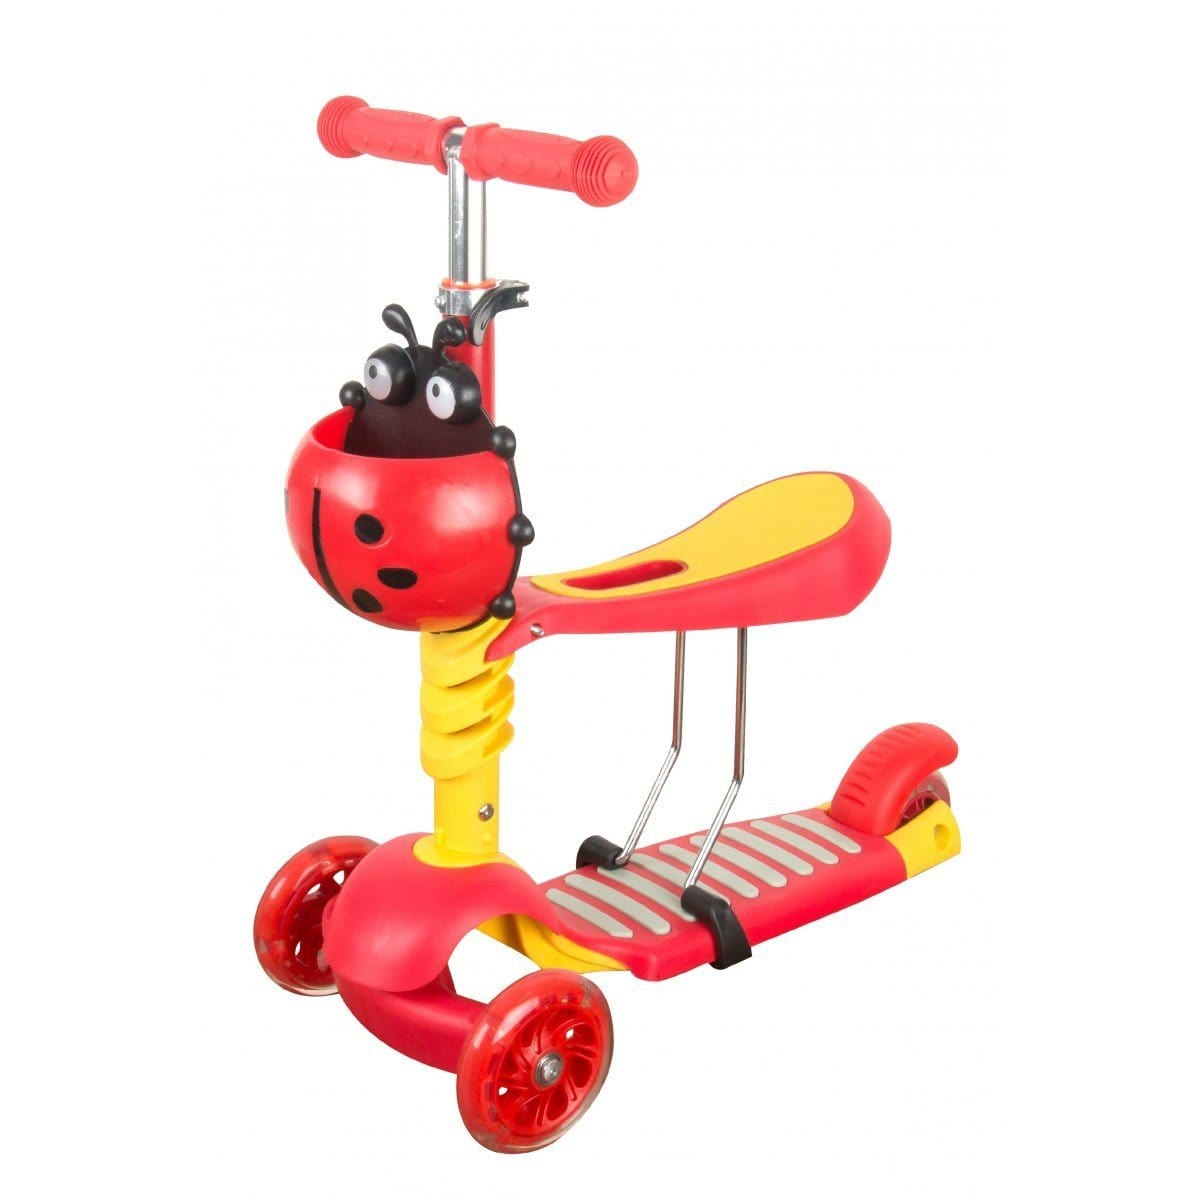 Scuttlebug 3 in 1 Scooter - Red Exclusivebrandsonline